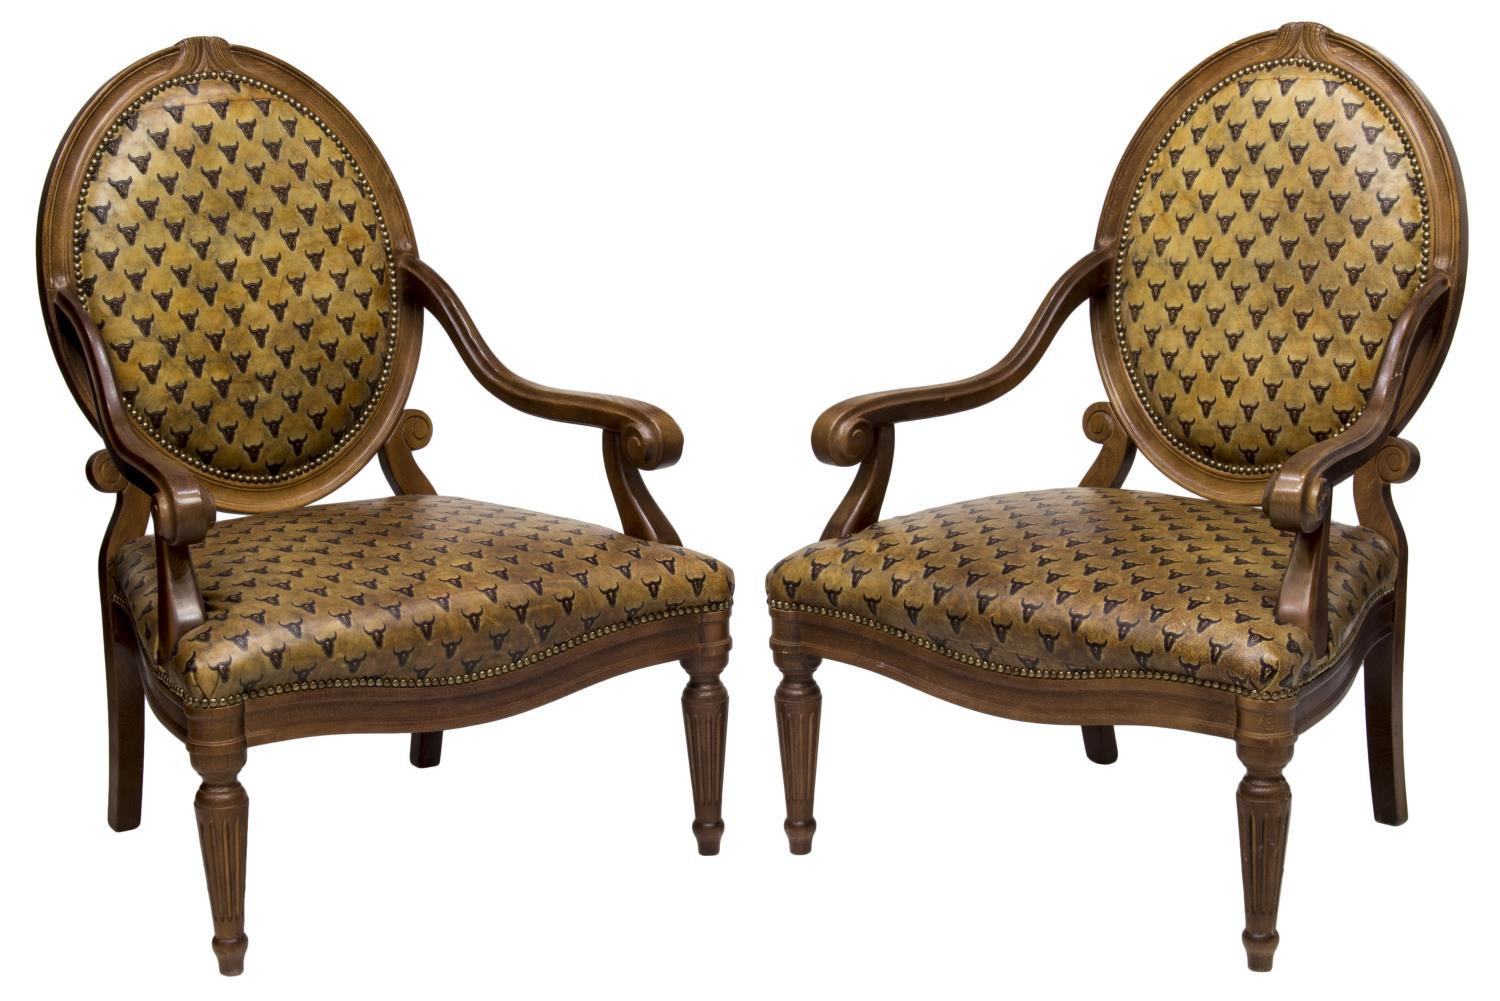 hickory chair louis xvi armless armchairs uk pair style leather longhorn chairs luxury